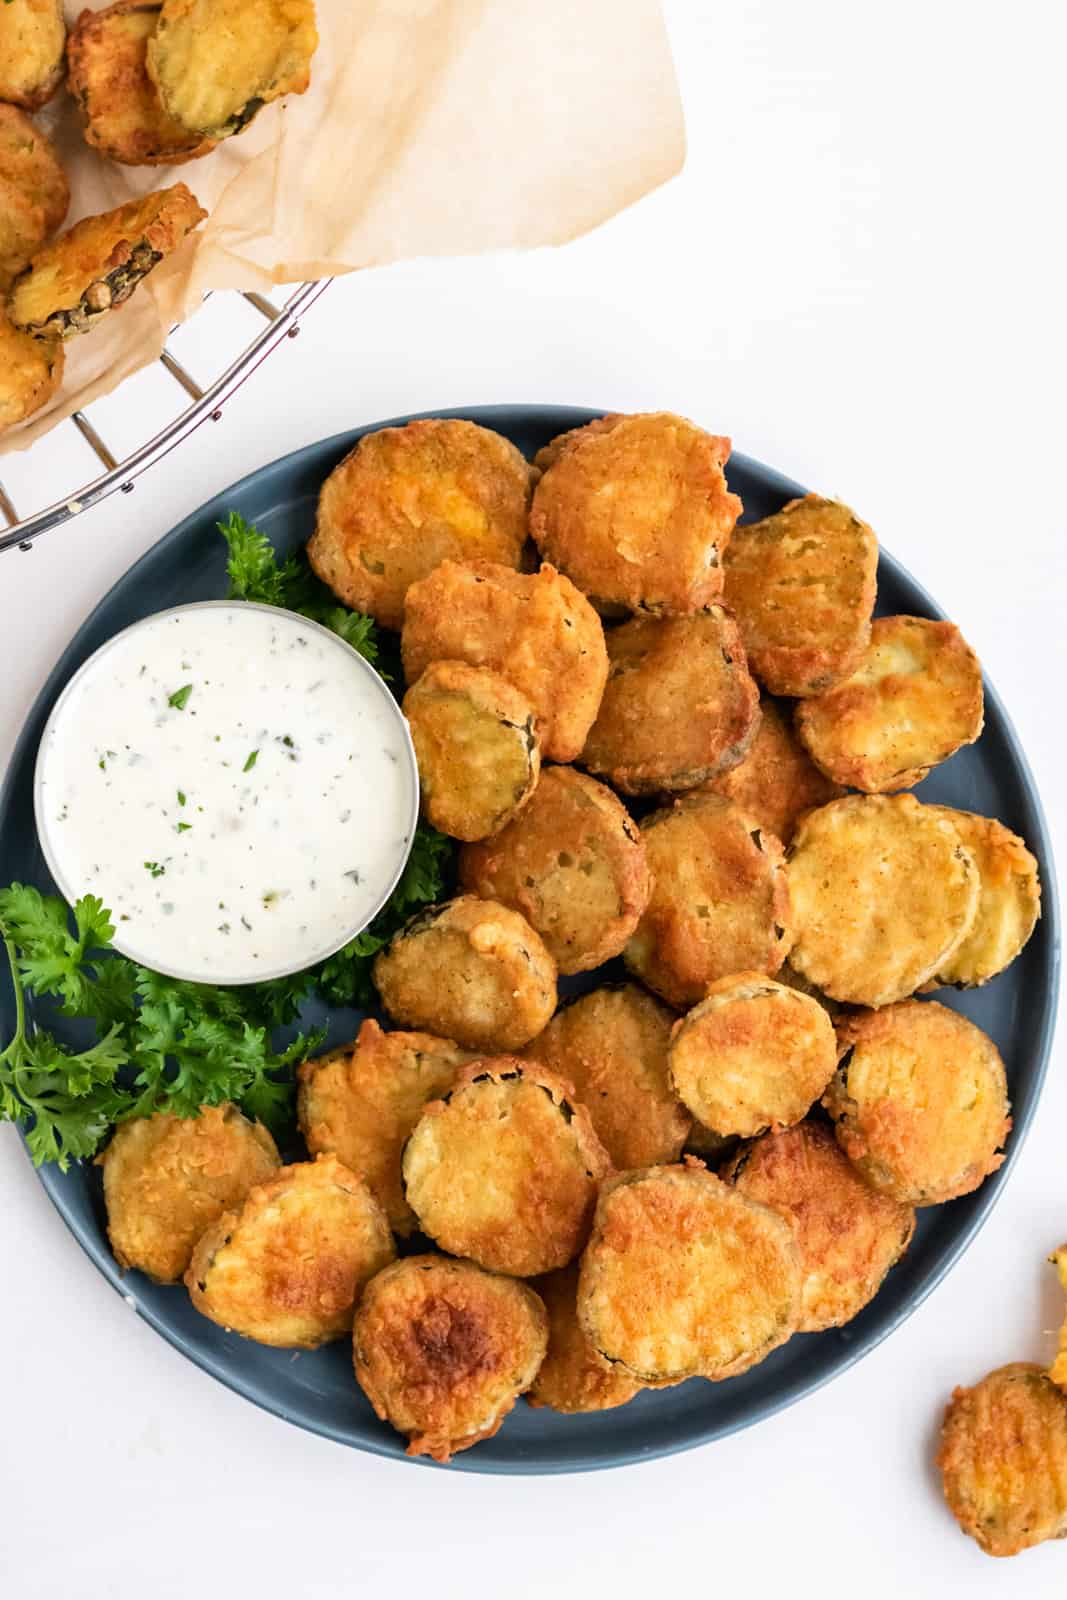 Overhead image of Fried Pickles on plate with ranch